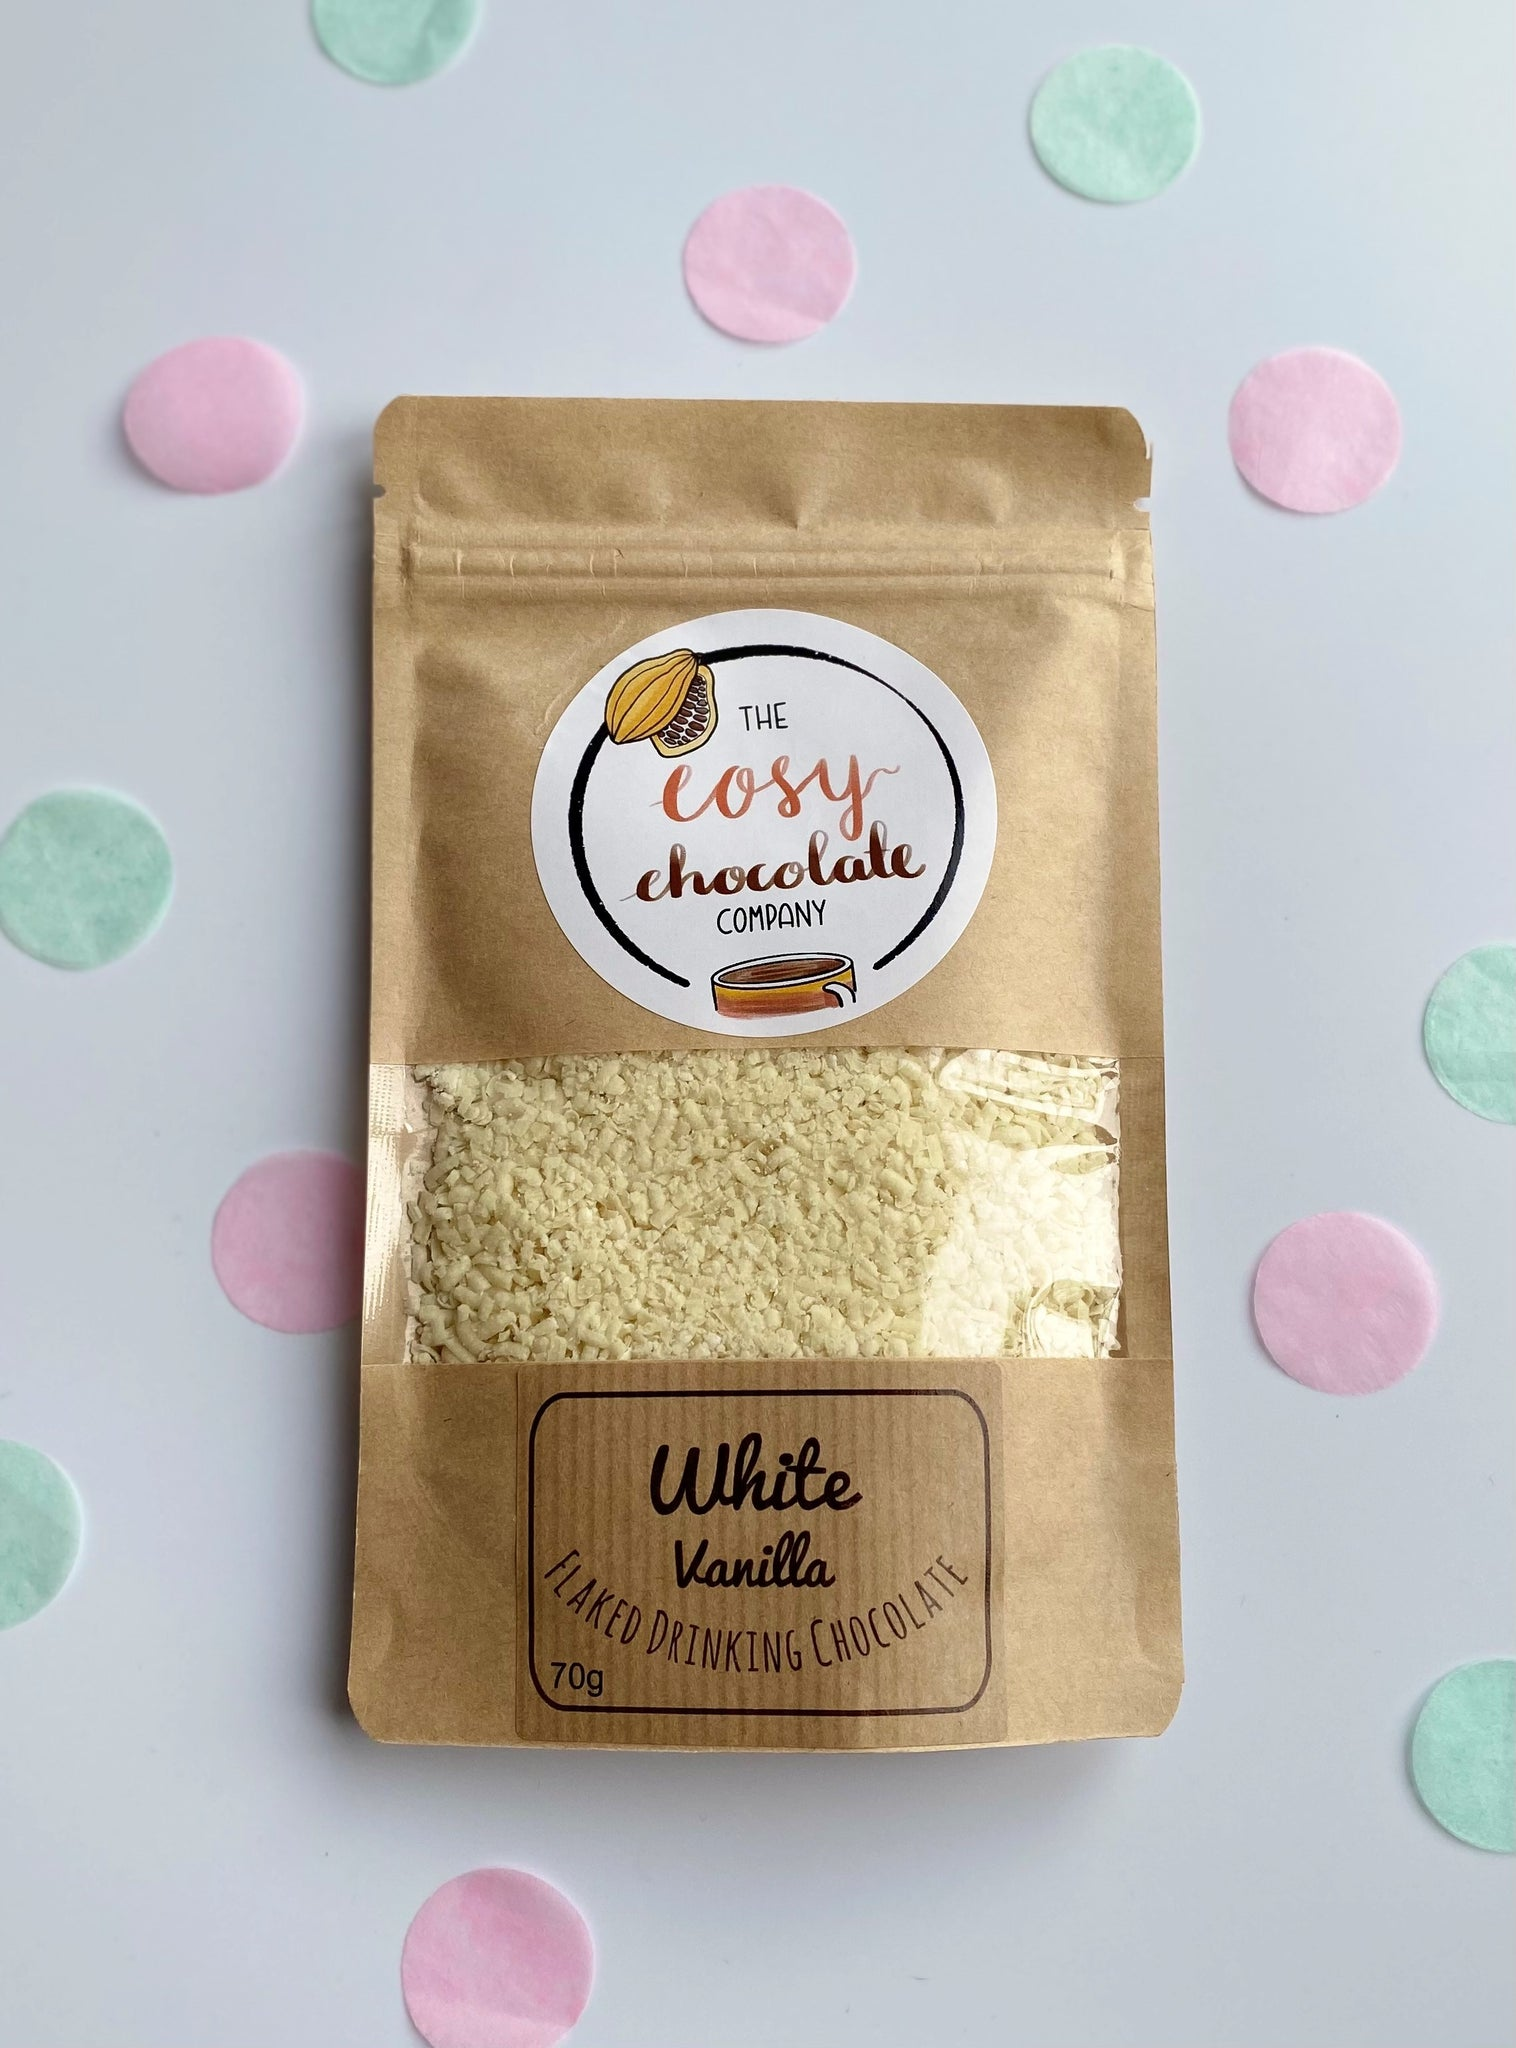 The Cosy Chocolate Company 'White' Hot Chocolate